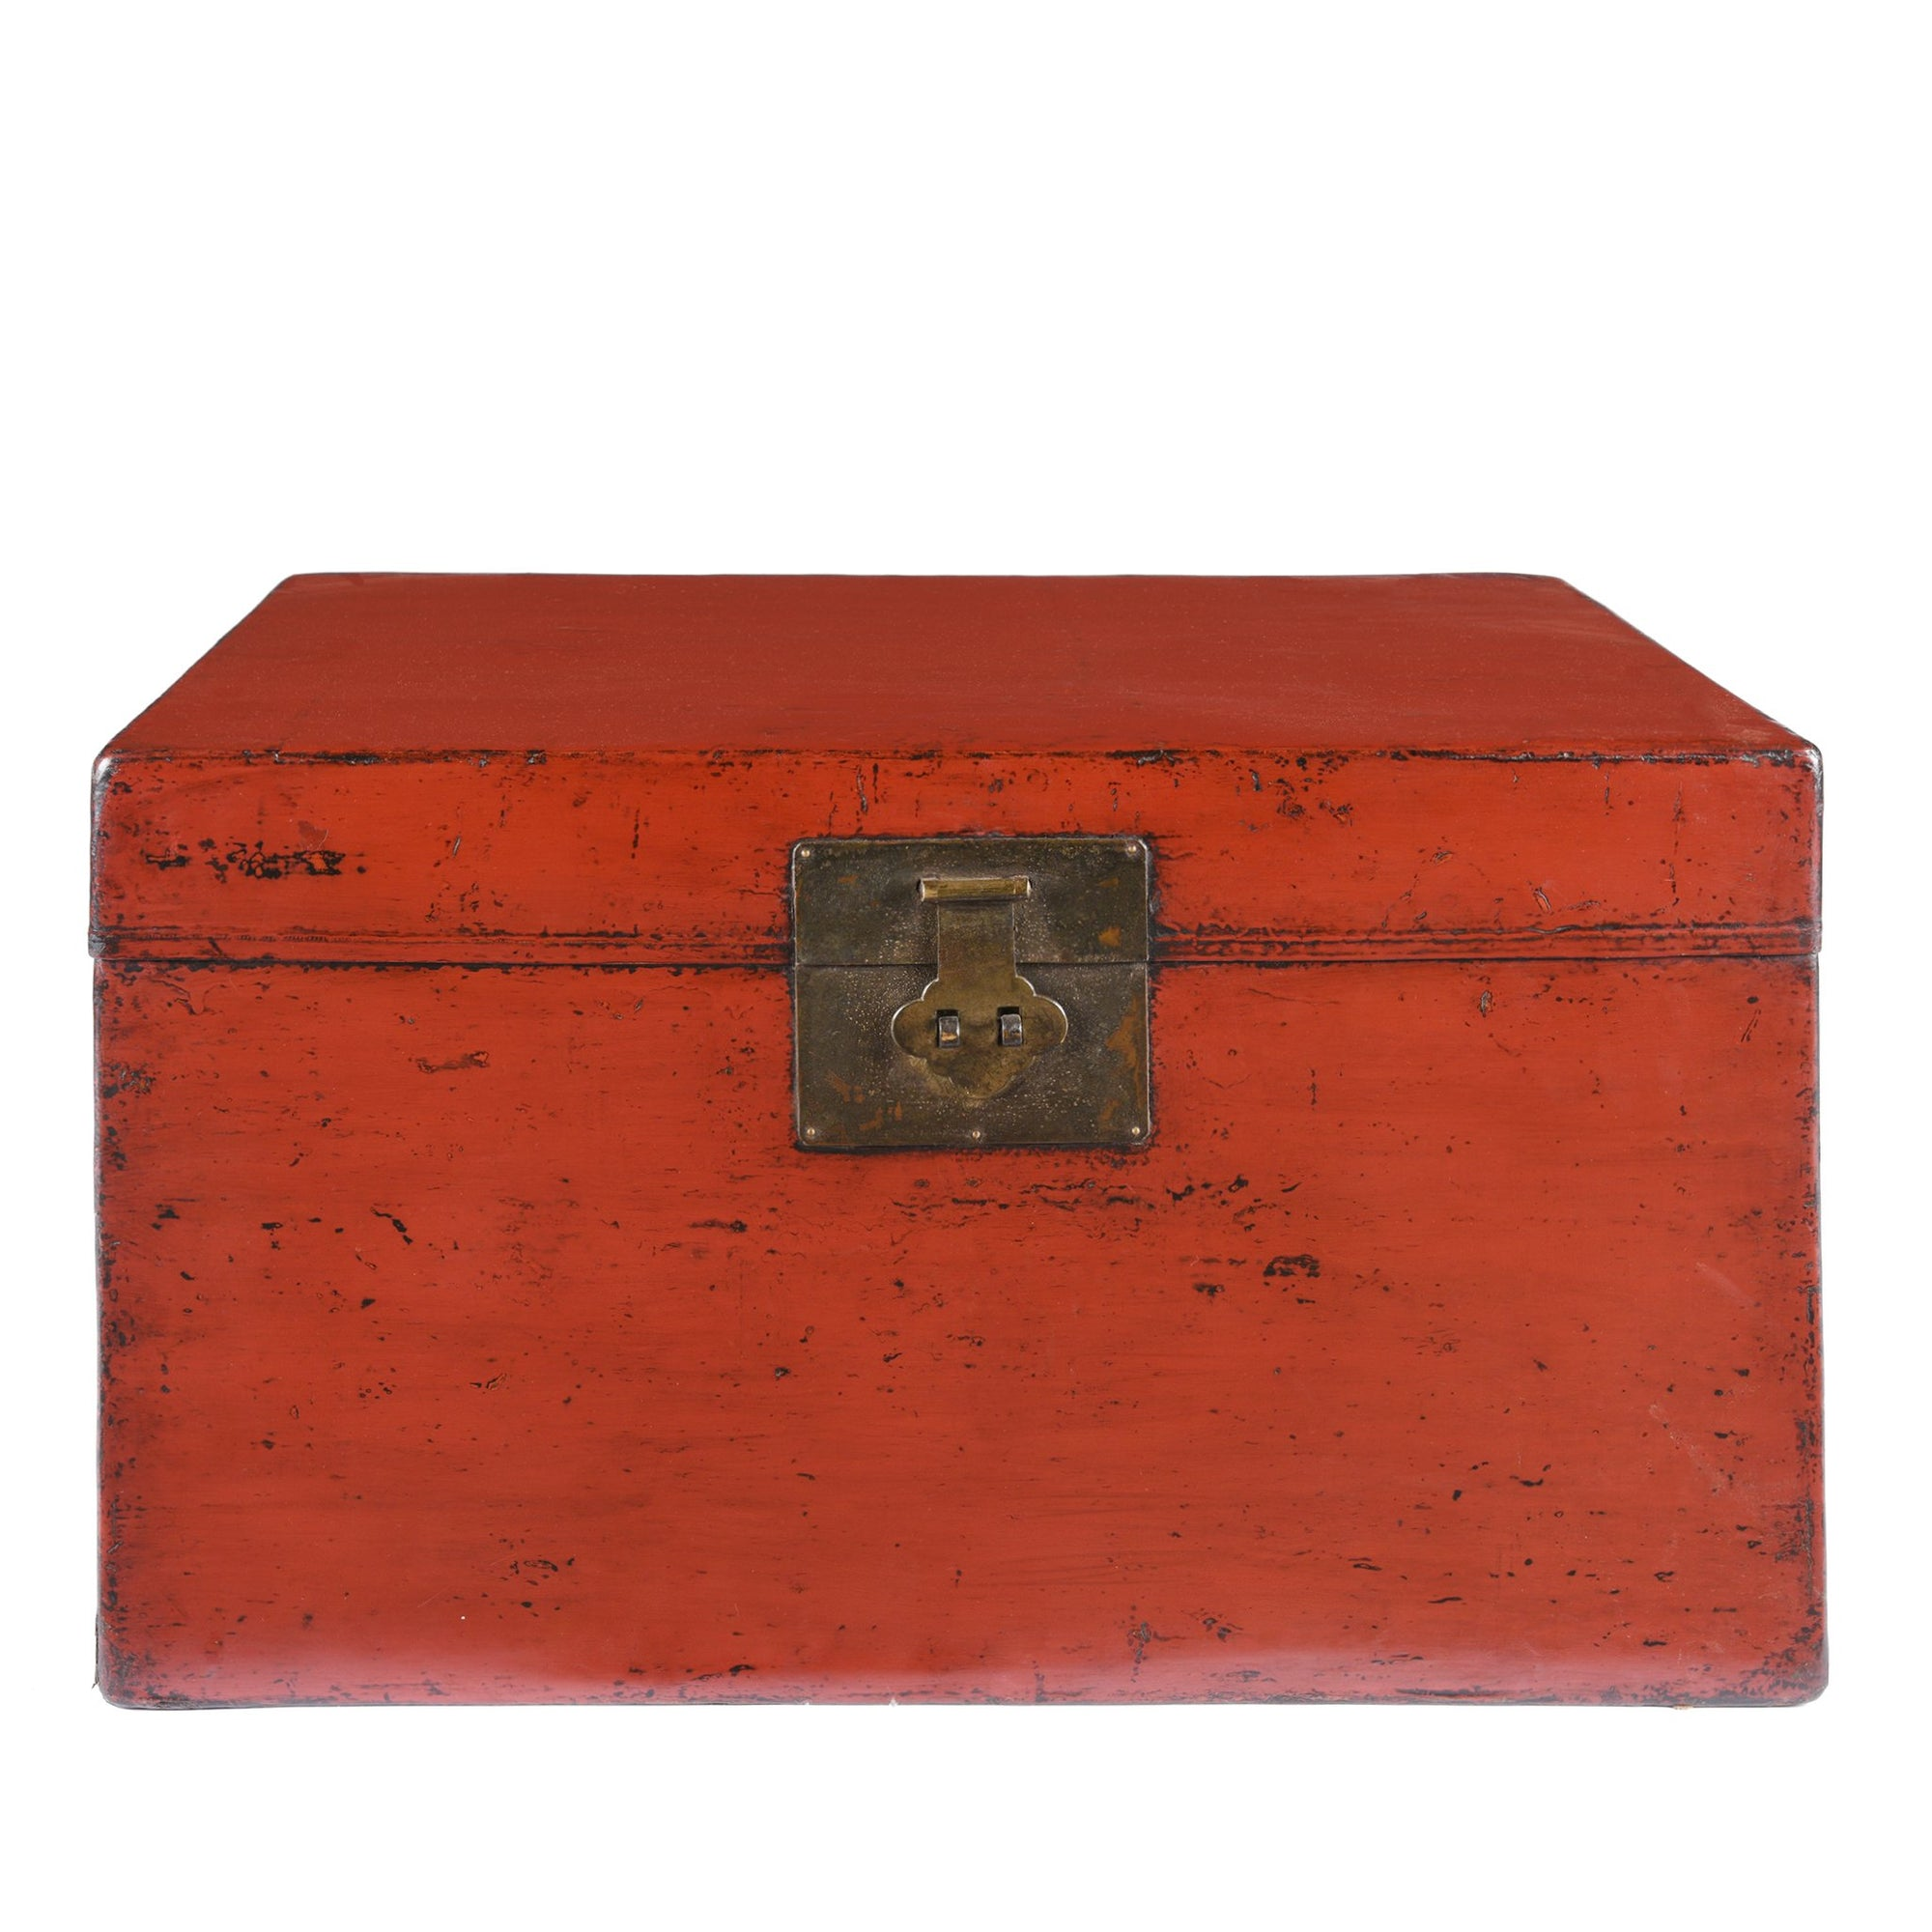 Chinese Red Lacquer Leather Trunk From Shanghai - Ca 1920 | Indigo Antiques